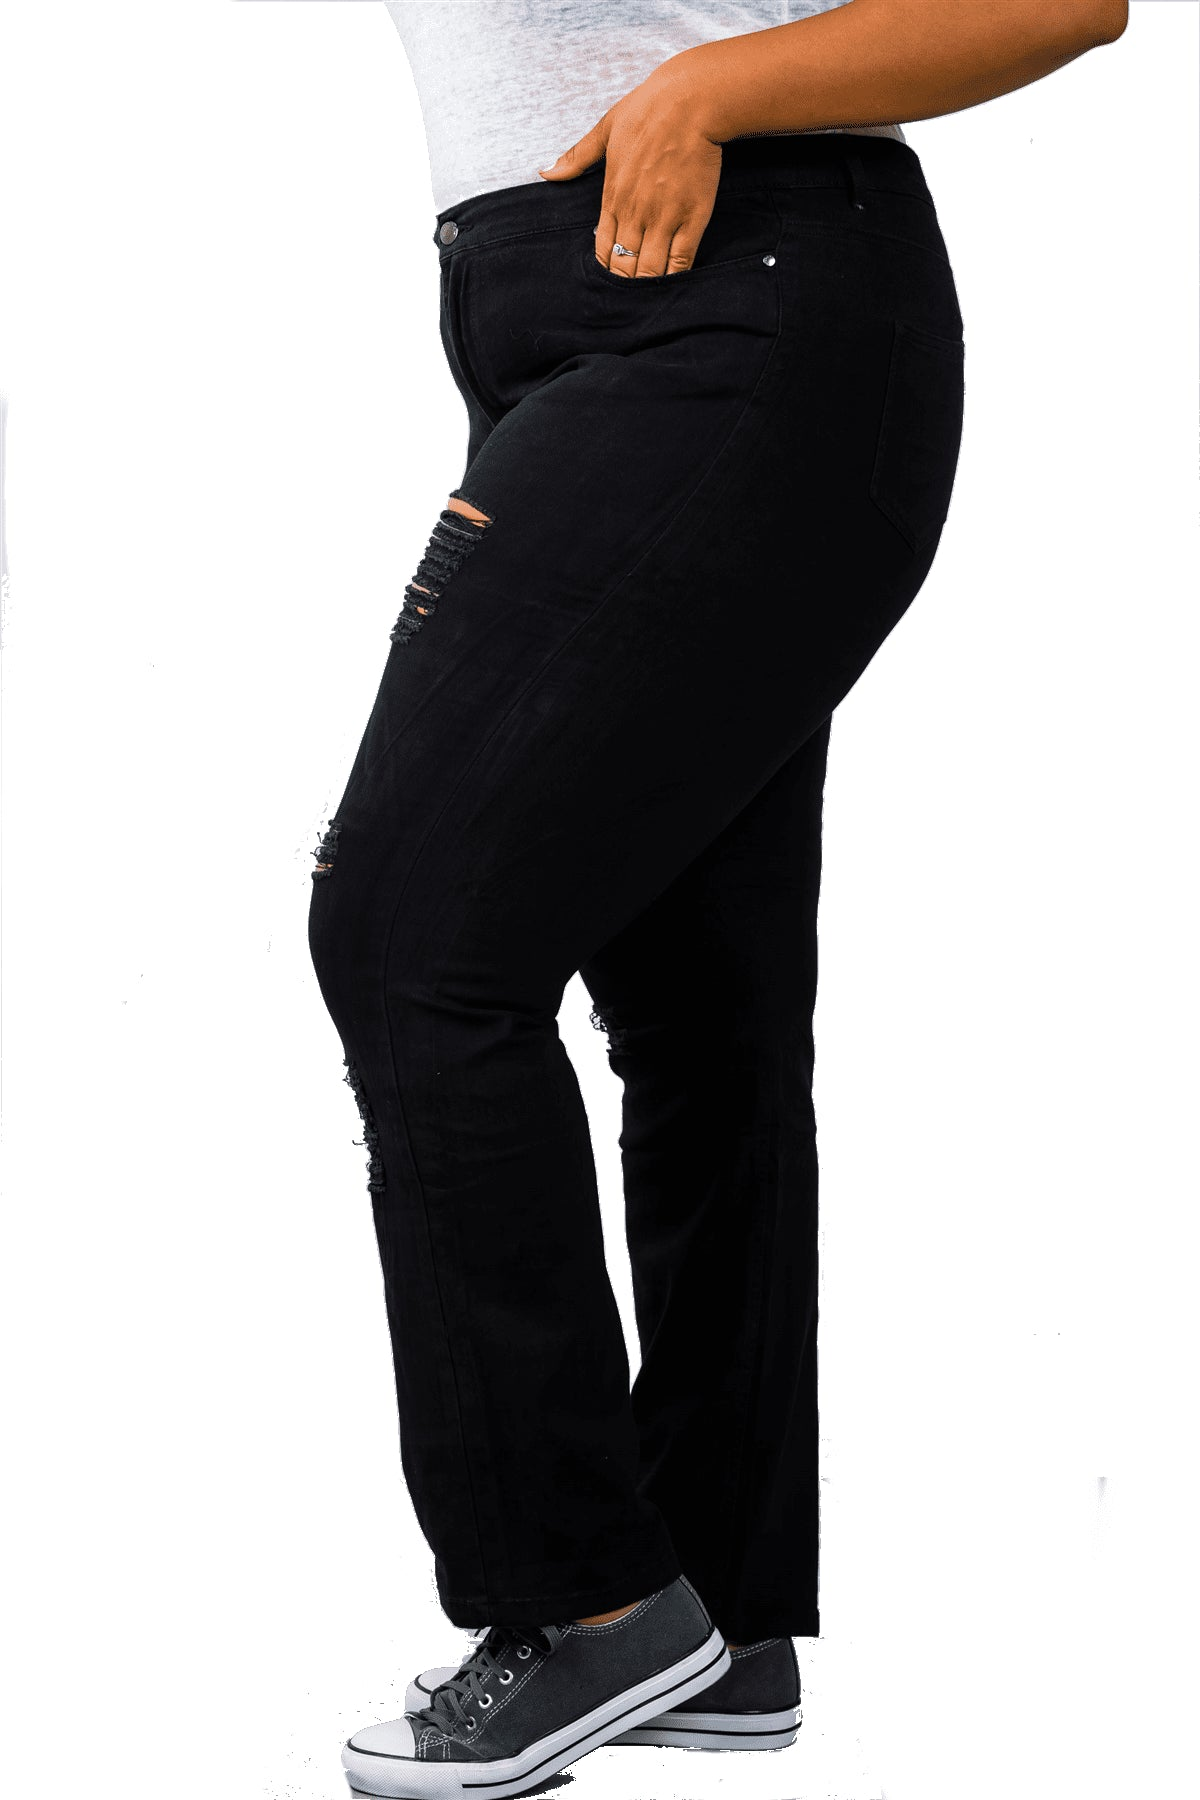 plus size Pants XL / AUS 14 - 16 / Black Tash Distressed Jeans